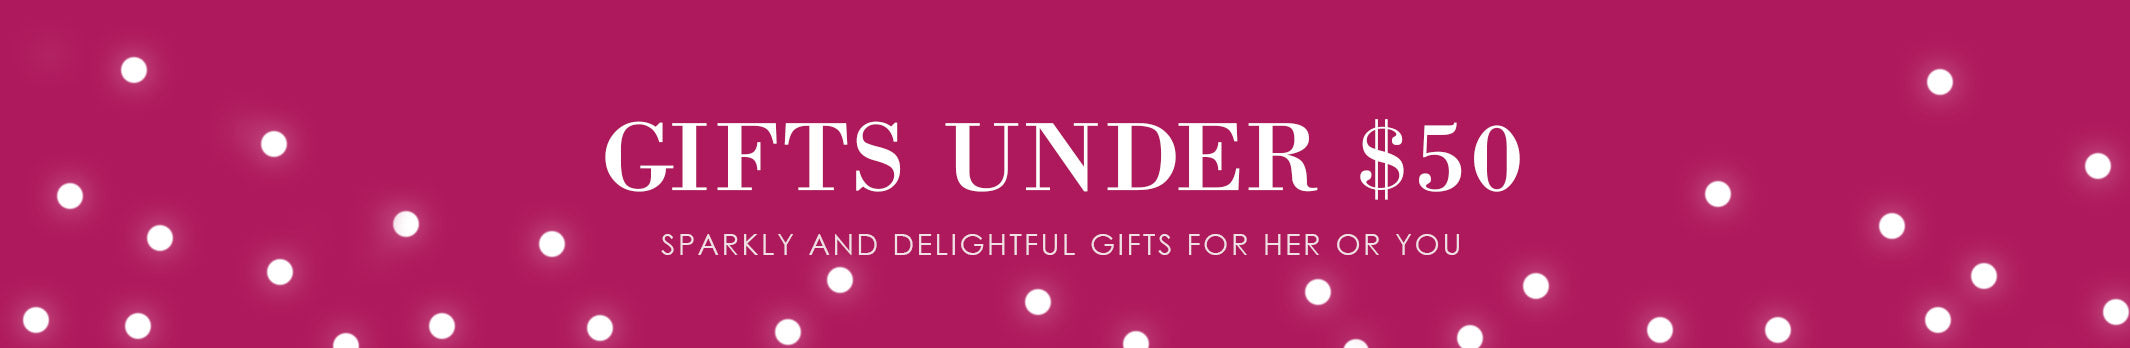 Holiday Gifts Under $50 for Her